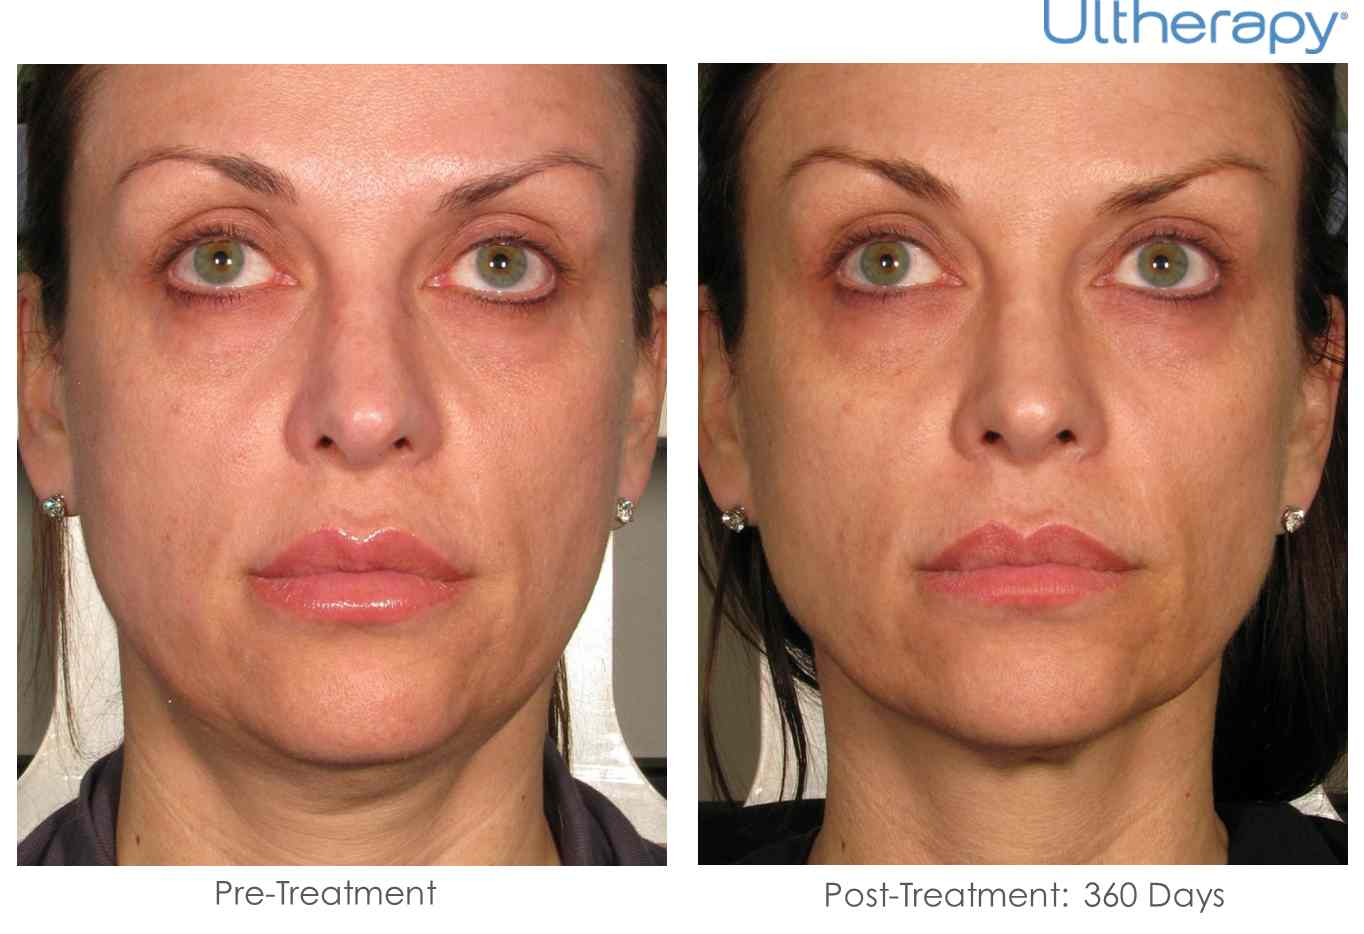 How does Ultherapy work?